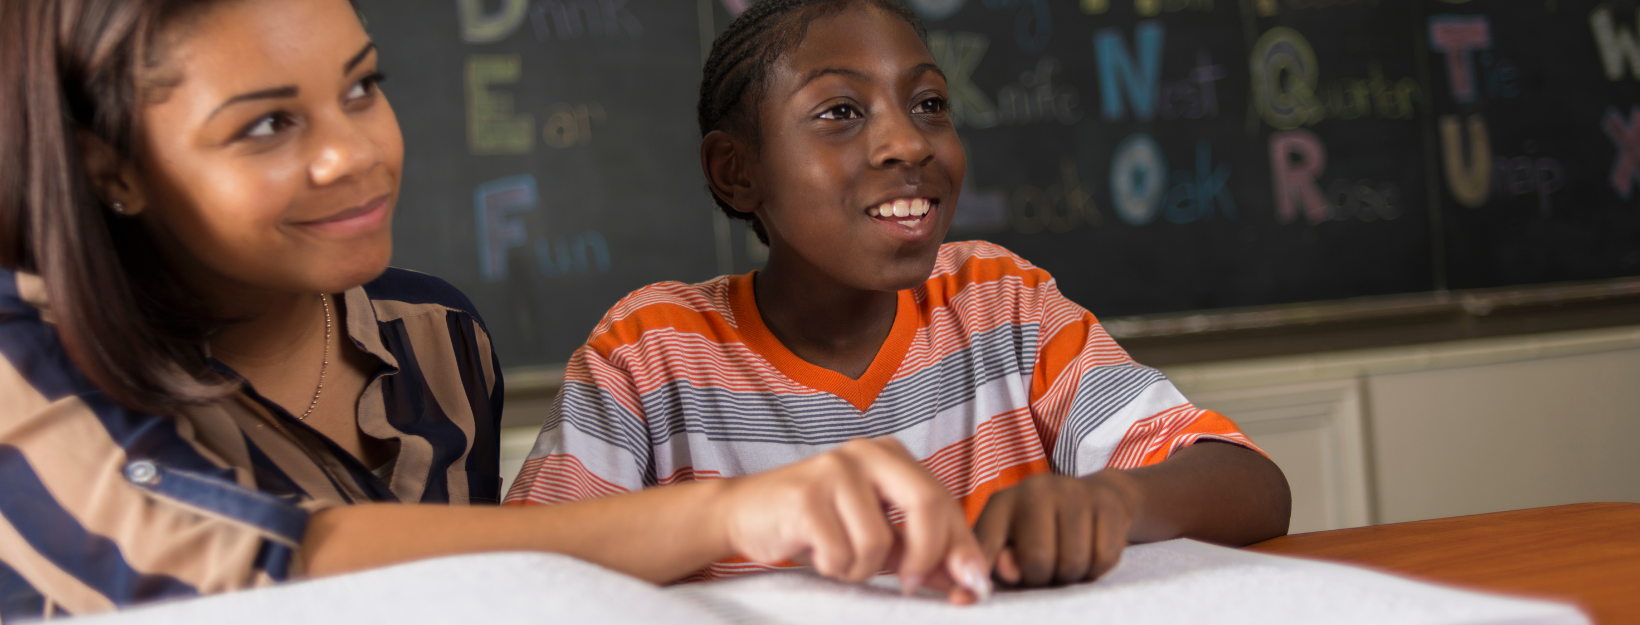 In a classroom, a young blind black male student wearing orange striped shirt who is learning to read Braille from his female teacher who is wearing a blue blouse with brown stripes